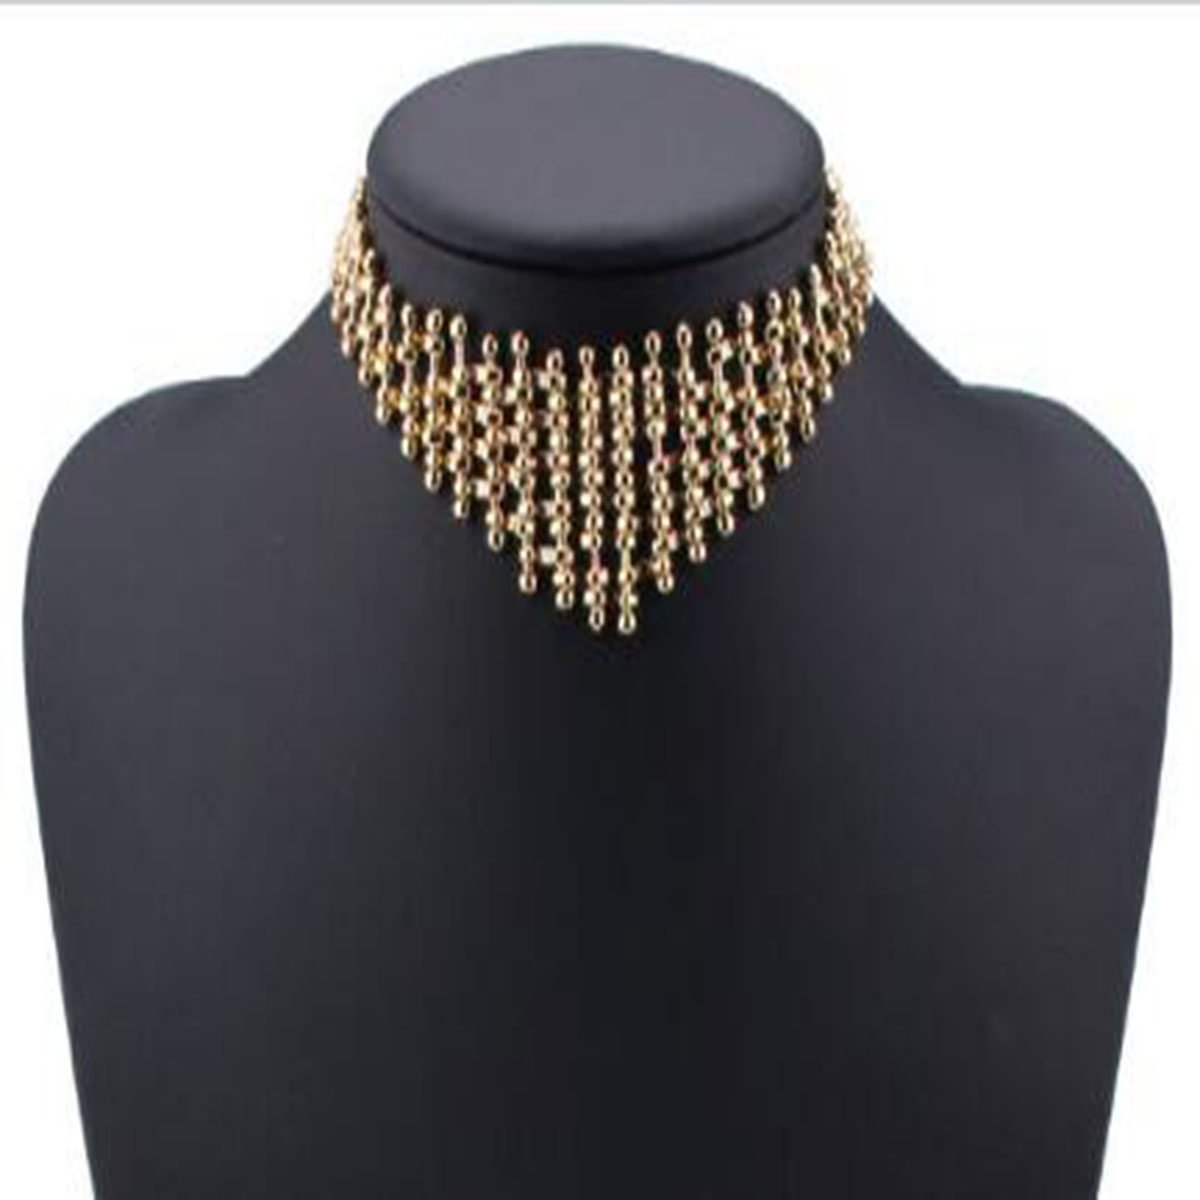 Necklaces Pendants The Hsnzzpp Brand Fashion Necklace Simple